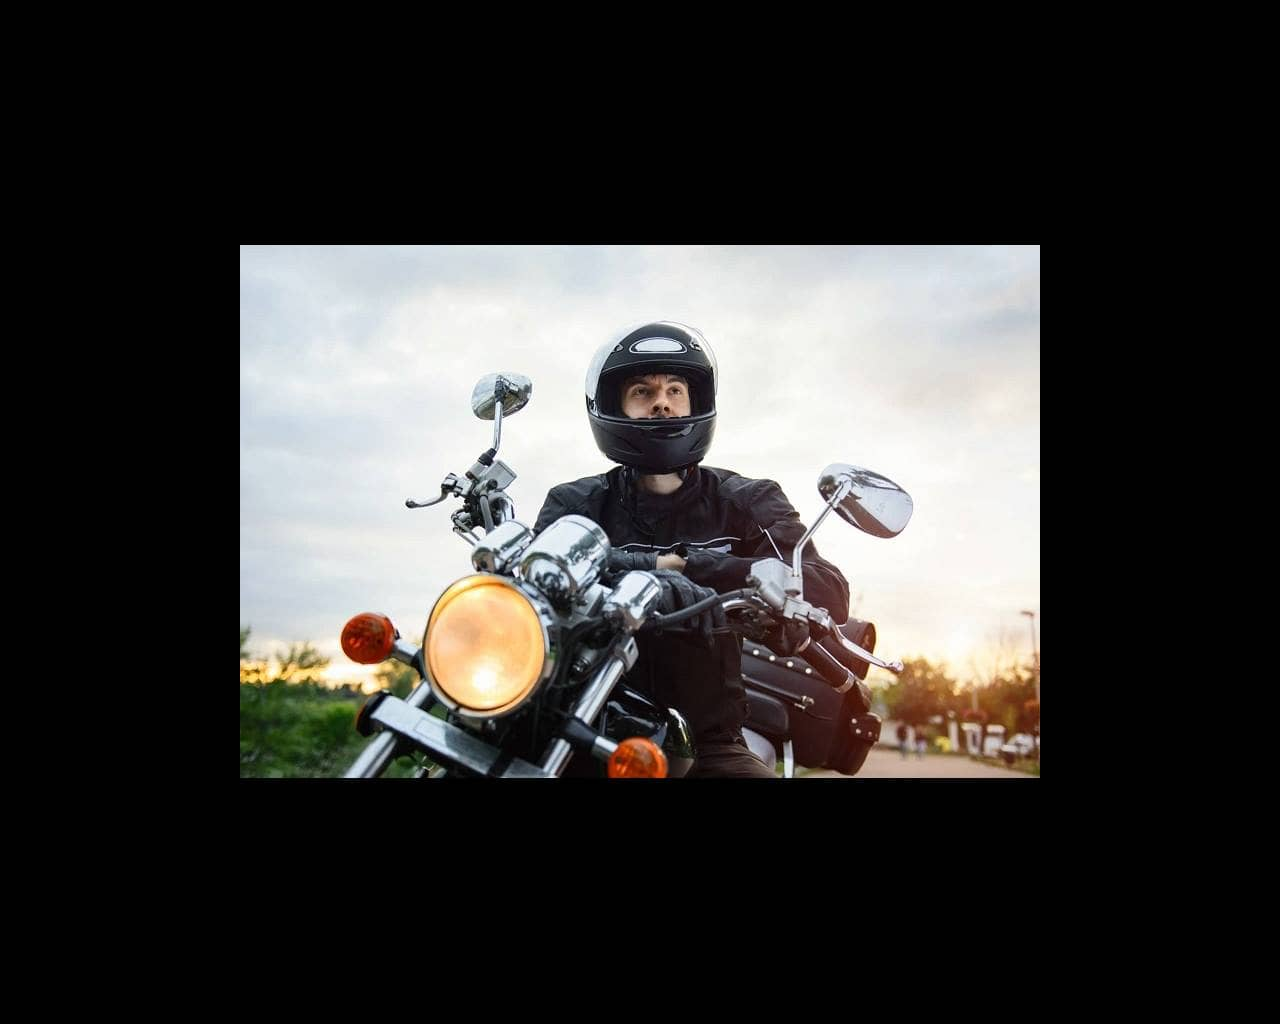 Biker wearing helmet on motorcycle